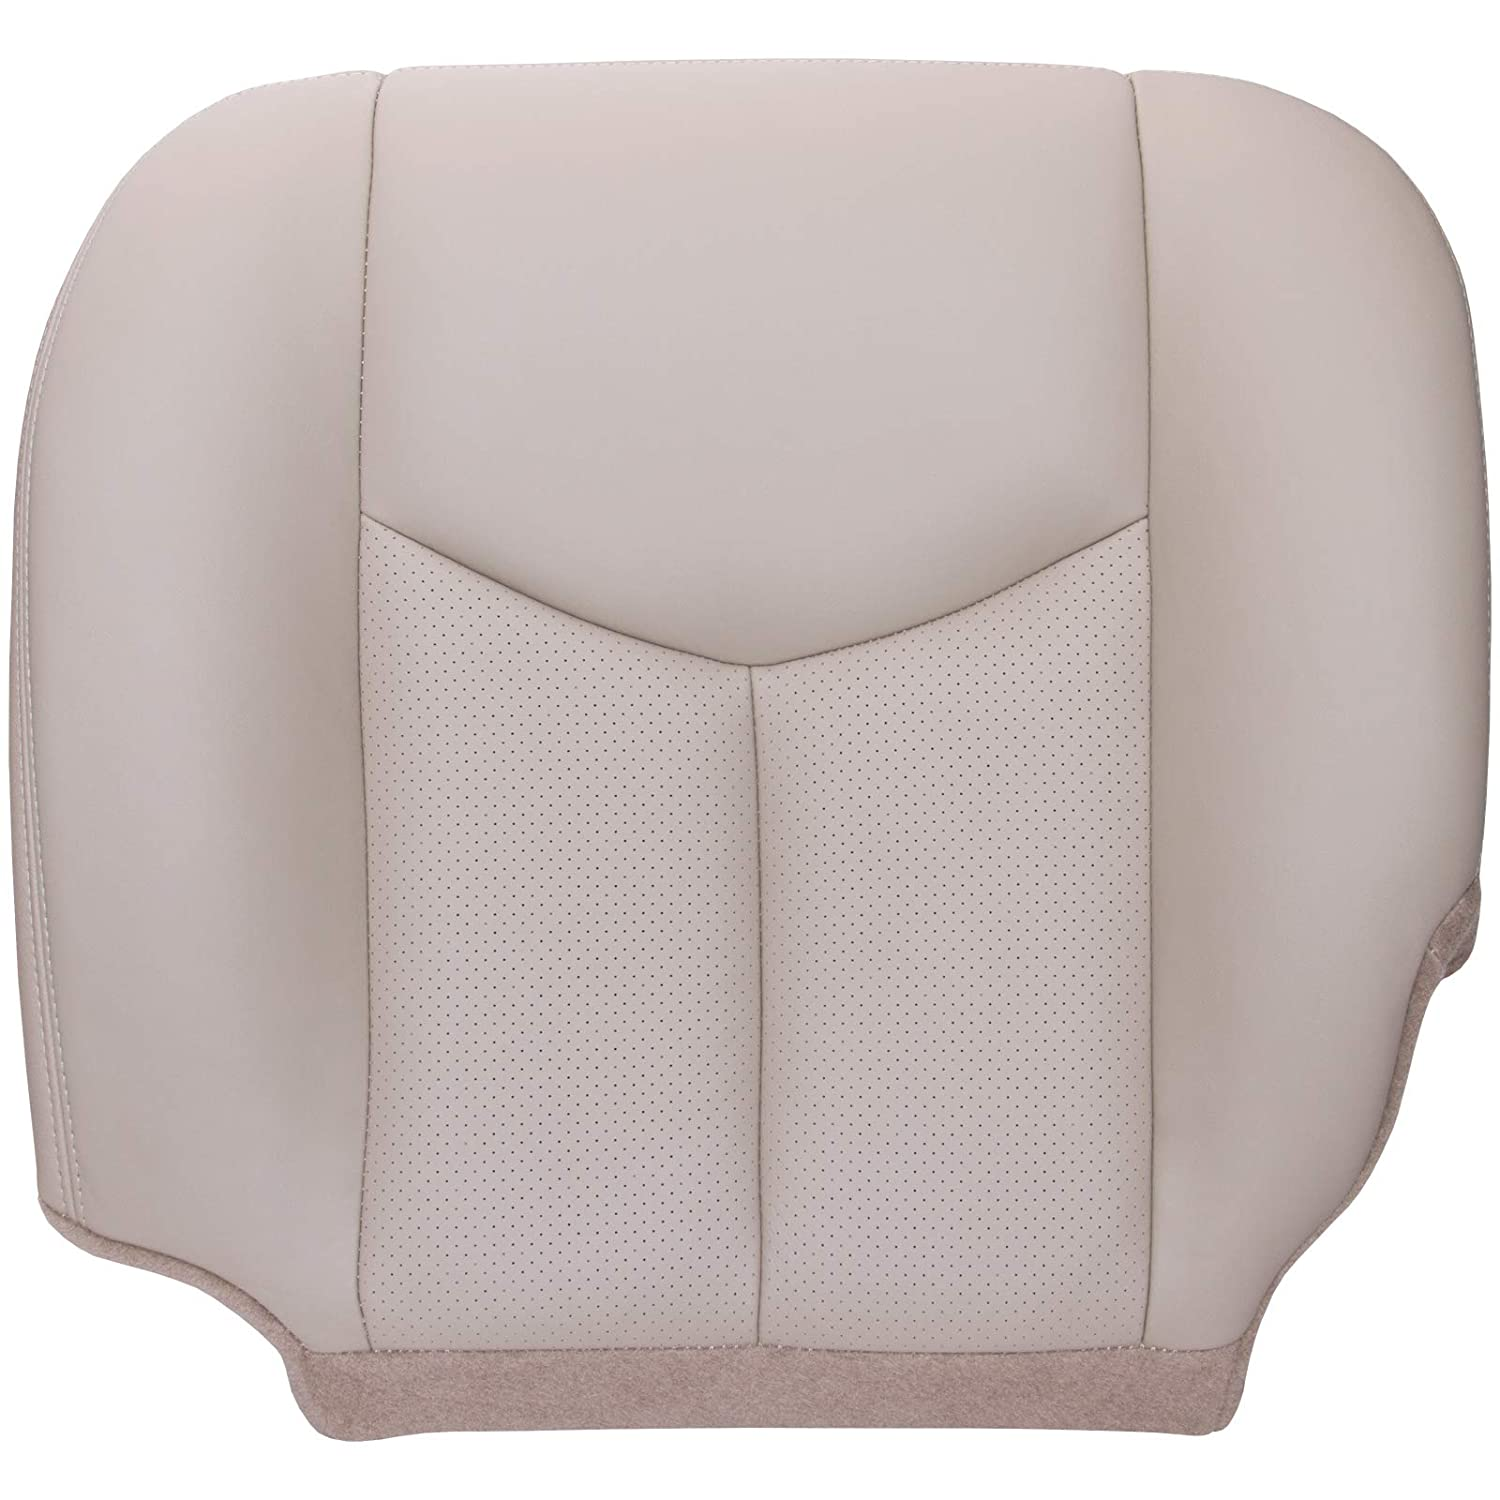 Compatible with 2003-2006 Cadillac Escalade Shale Tan The Seat Shop Driver Bottom Replacement Perforated Leather Seat Cover